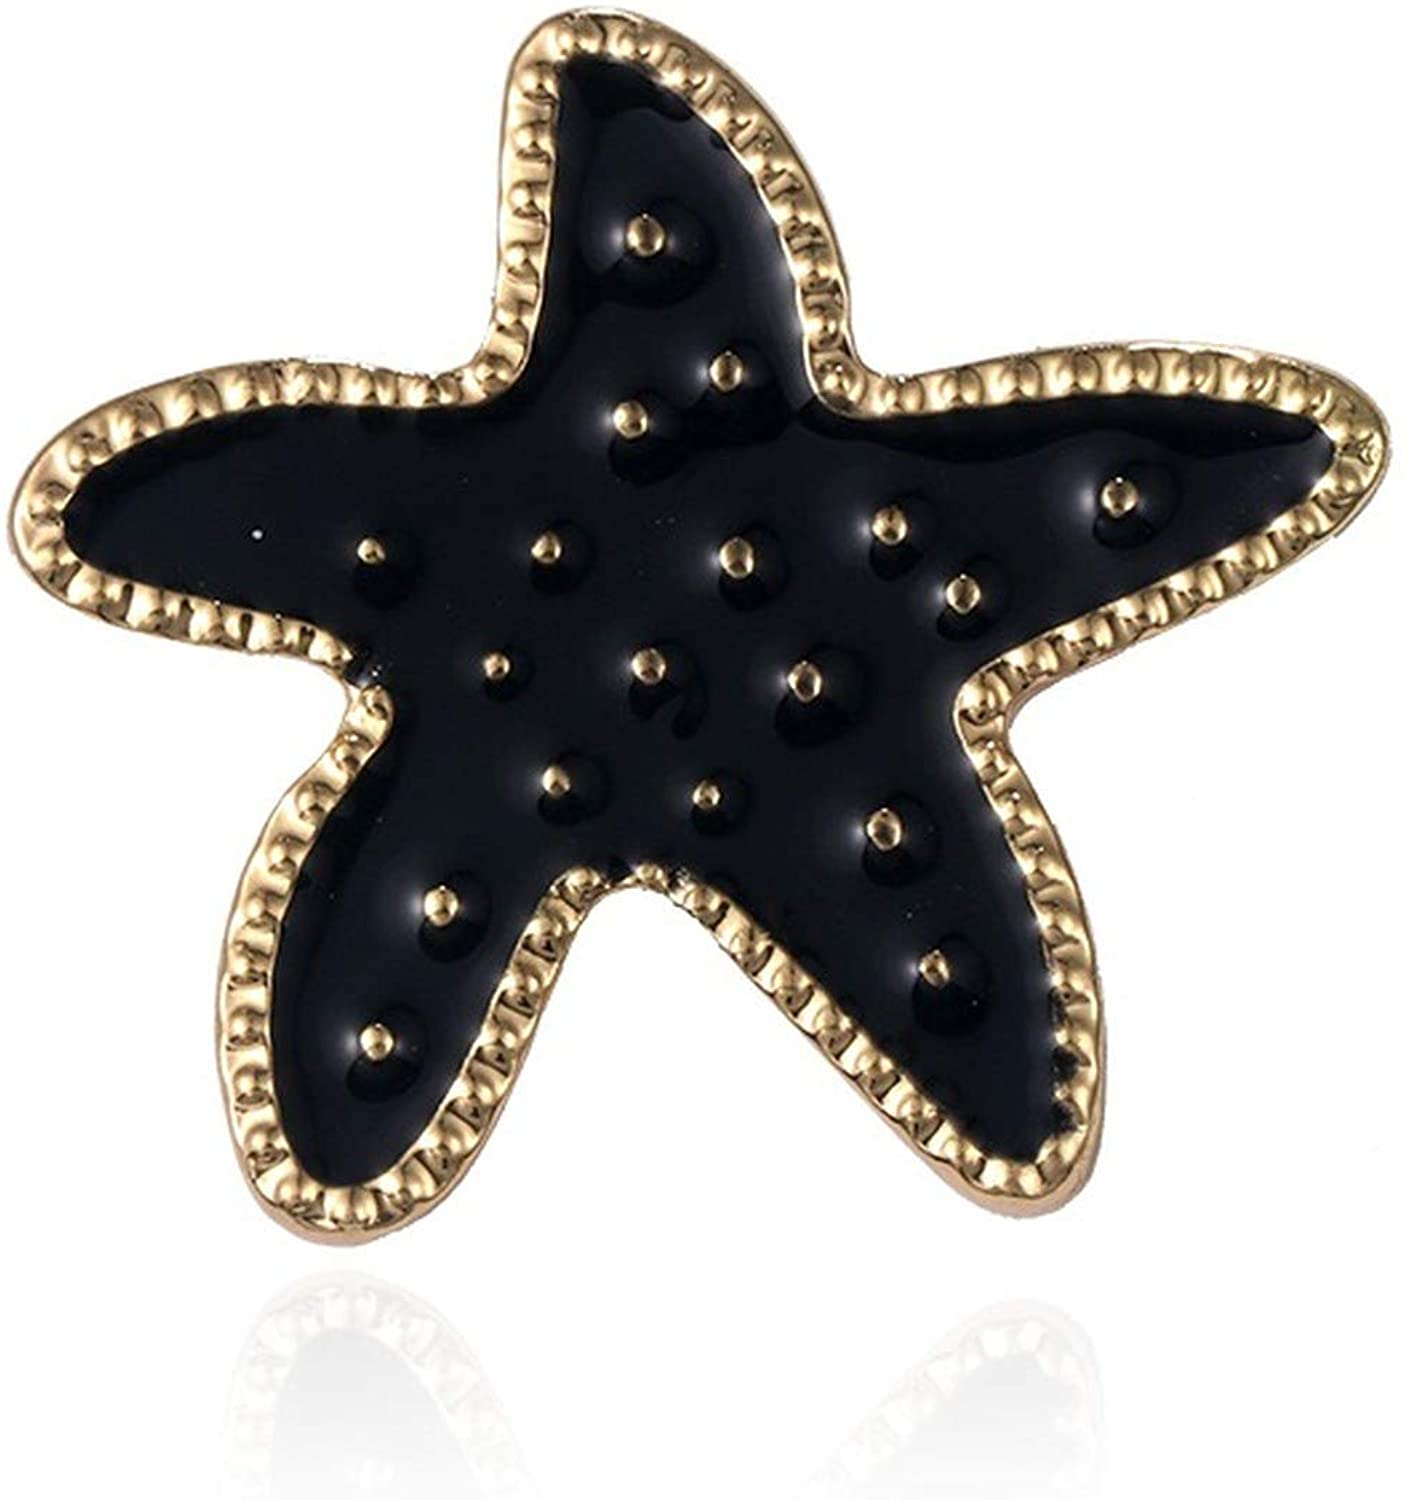 Black Starfish Metal Brooch Pins for Men or Women Bohemian Jewelry